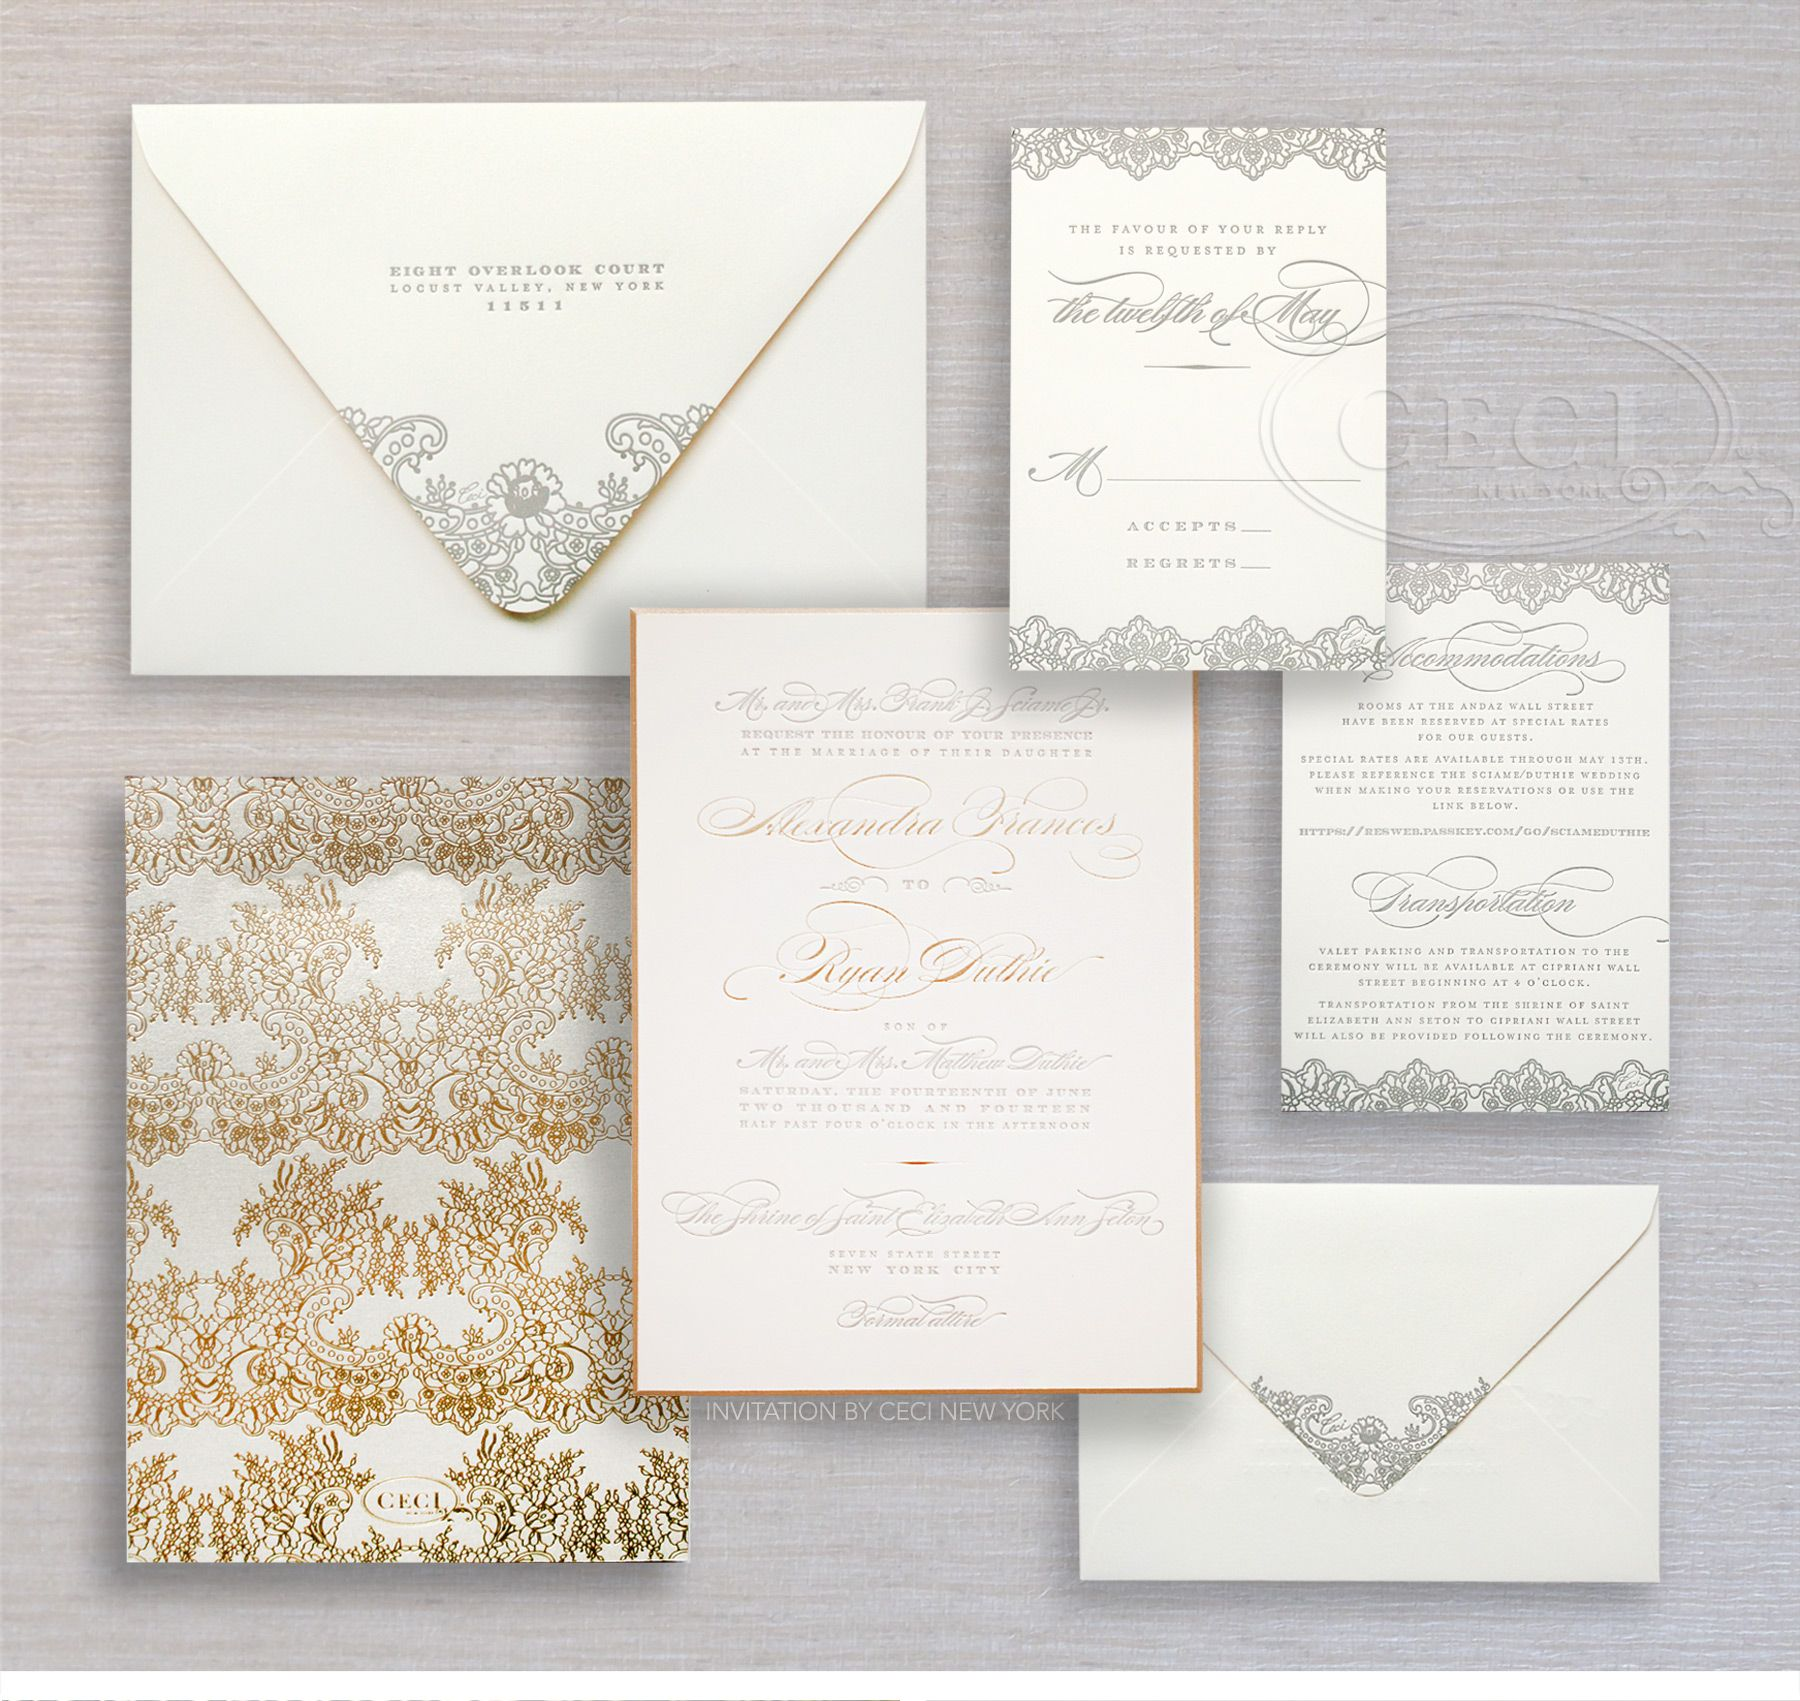 Gold and silver wedding invitation suite by Ceci New York.   MIS ...